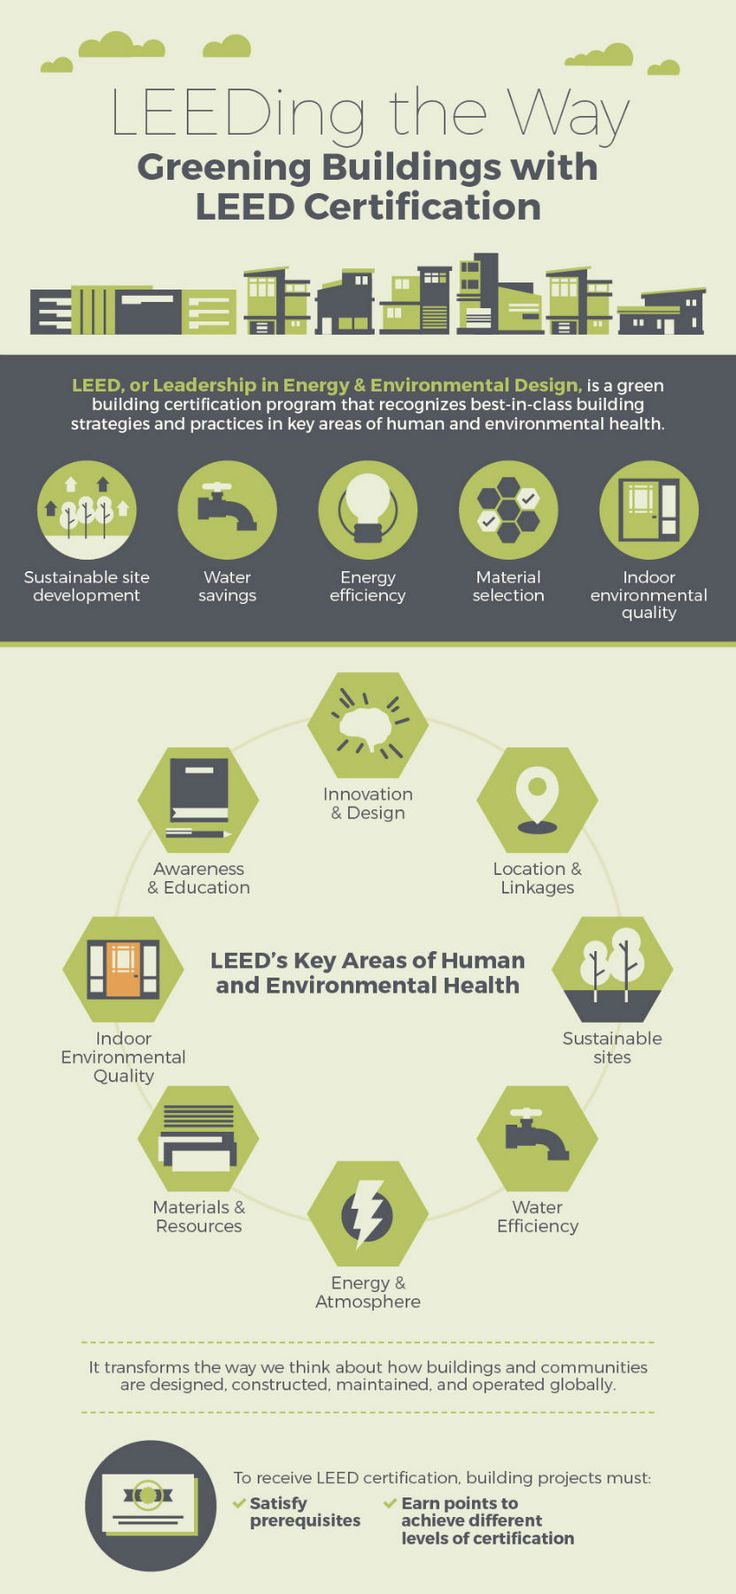 Best 25 leed certification ideas on pinterest leed certified short for leadership in energy and environmental design leed was established in 1994 by the 1betcityfo Images